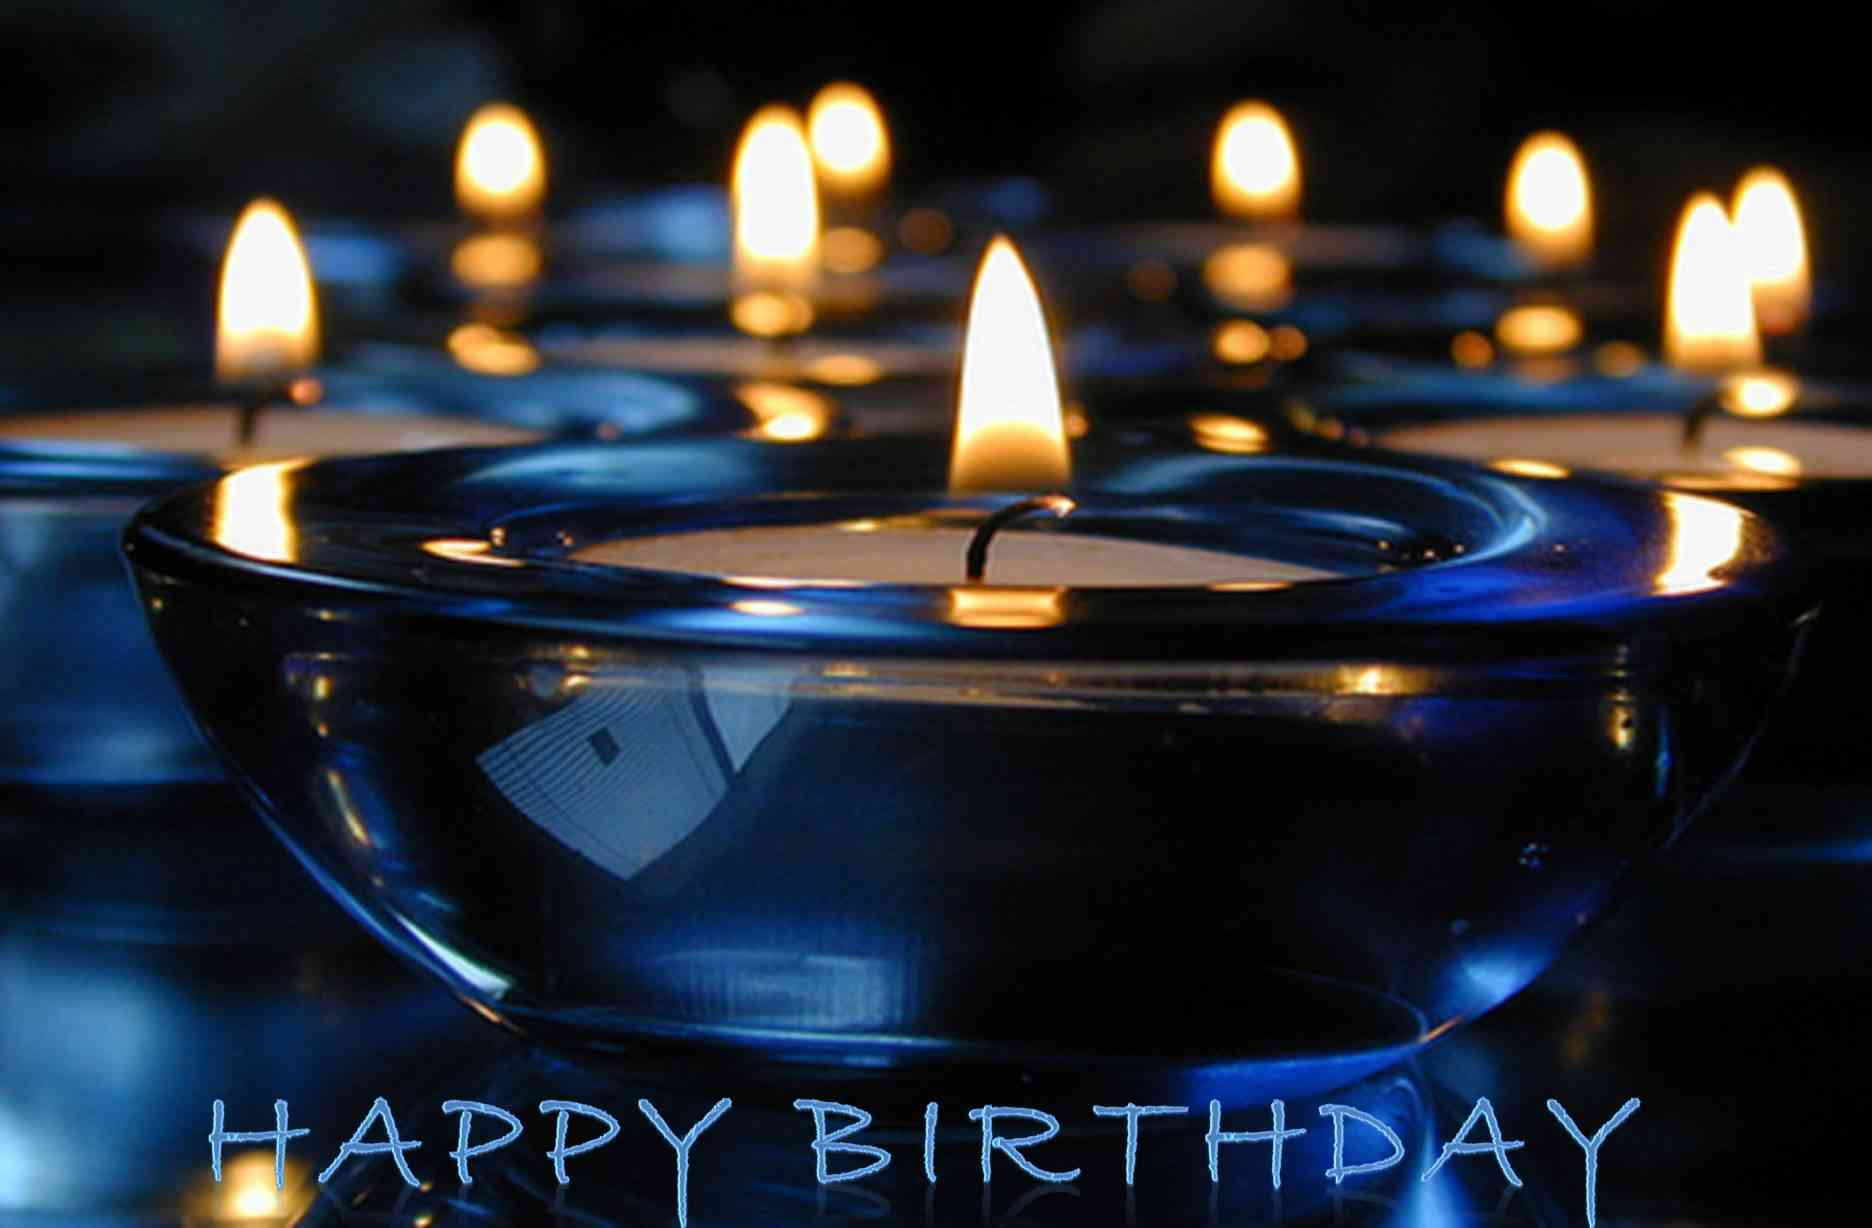 Happy Birthday Wishes HD Wallpapers, Images, Pictures & Photos